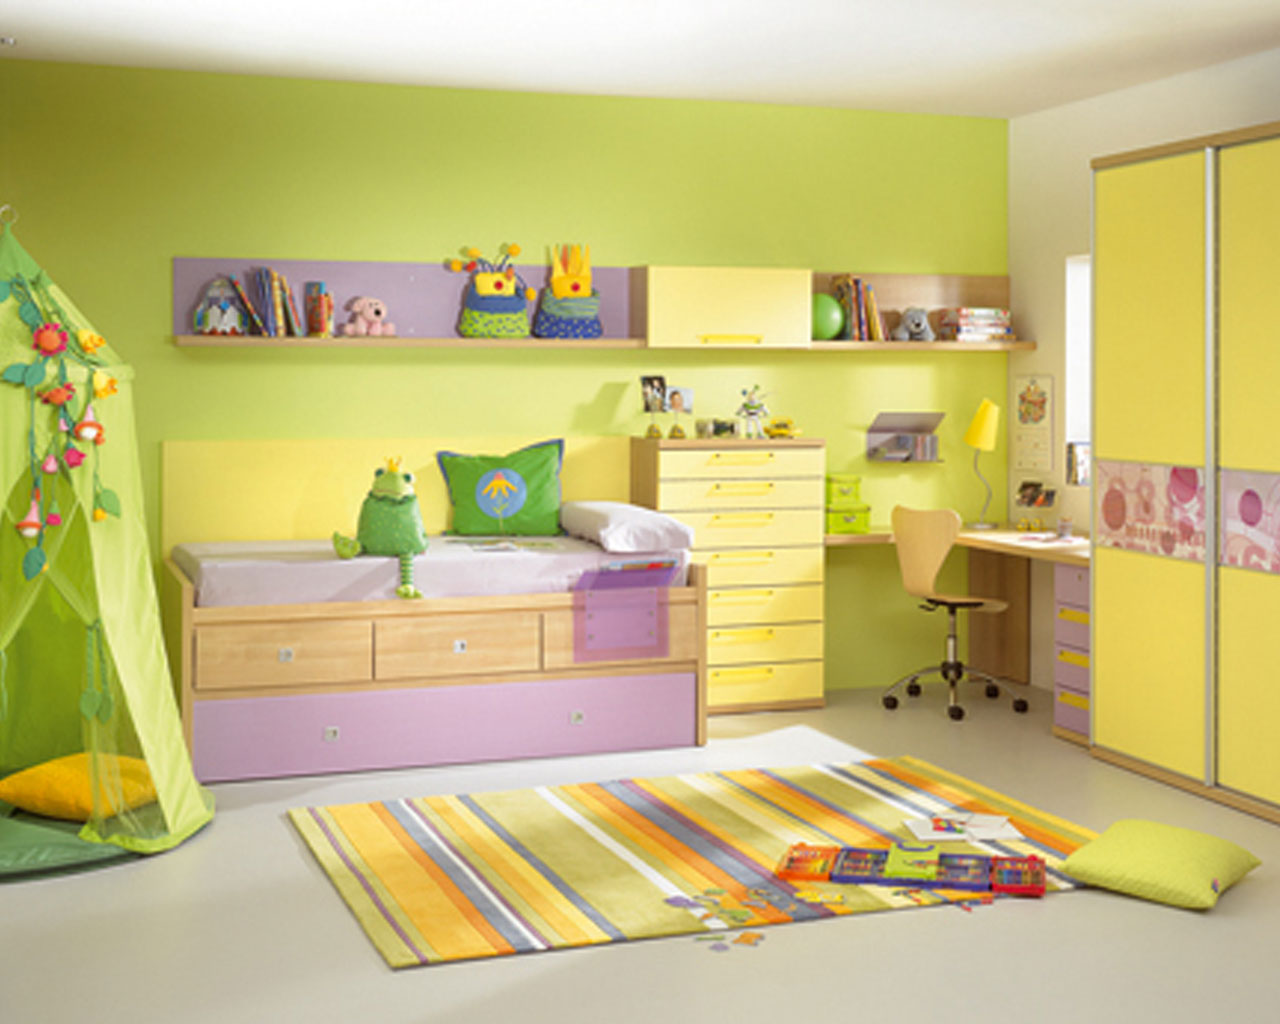 Home Priority: Vibrant Yellow Bedroom Ideas For Fun and Cheerful People